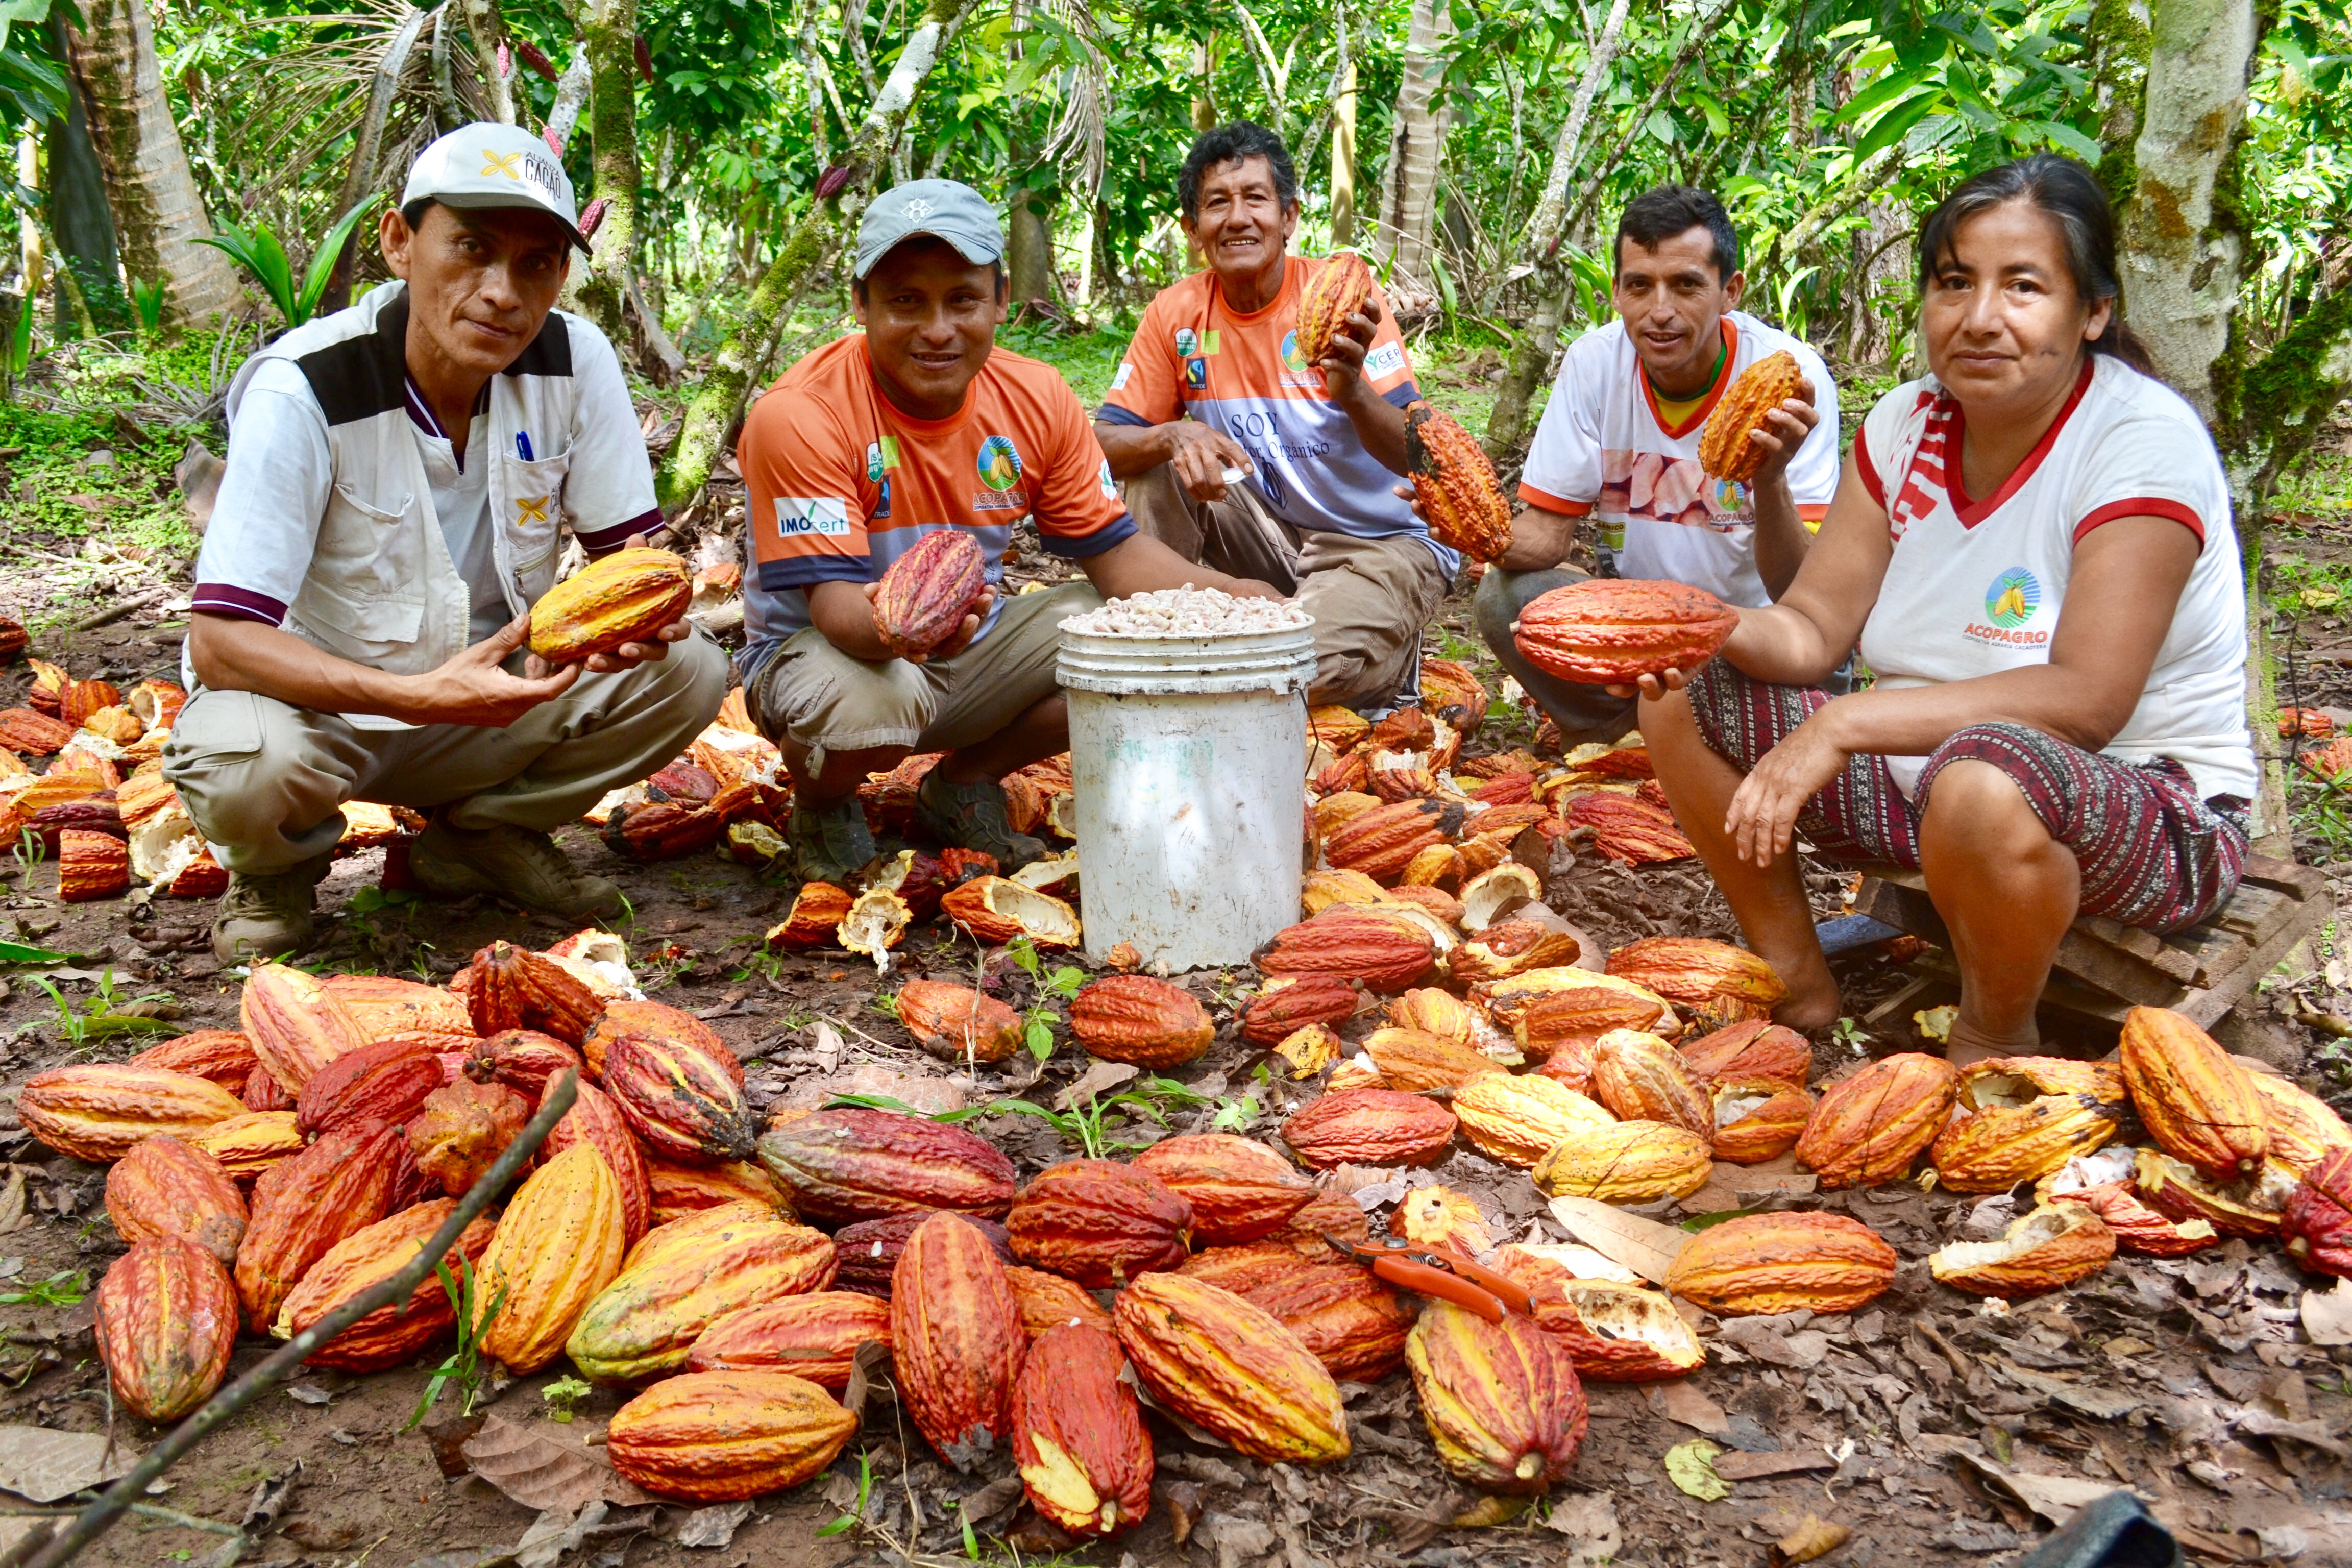 Credit: Peru Cocoa Alliance, 2018